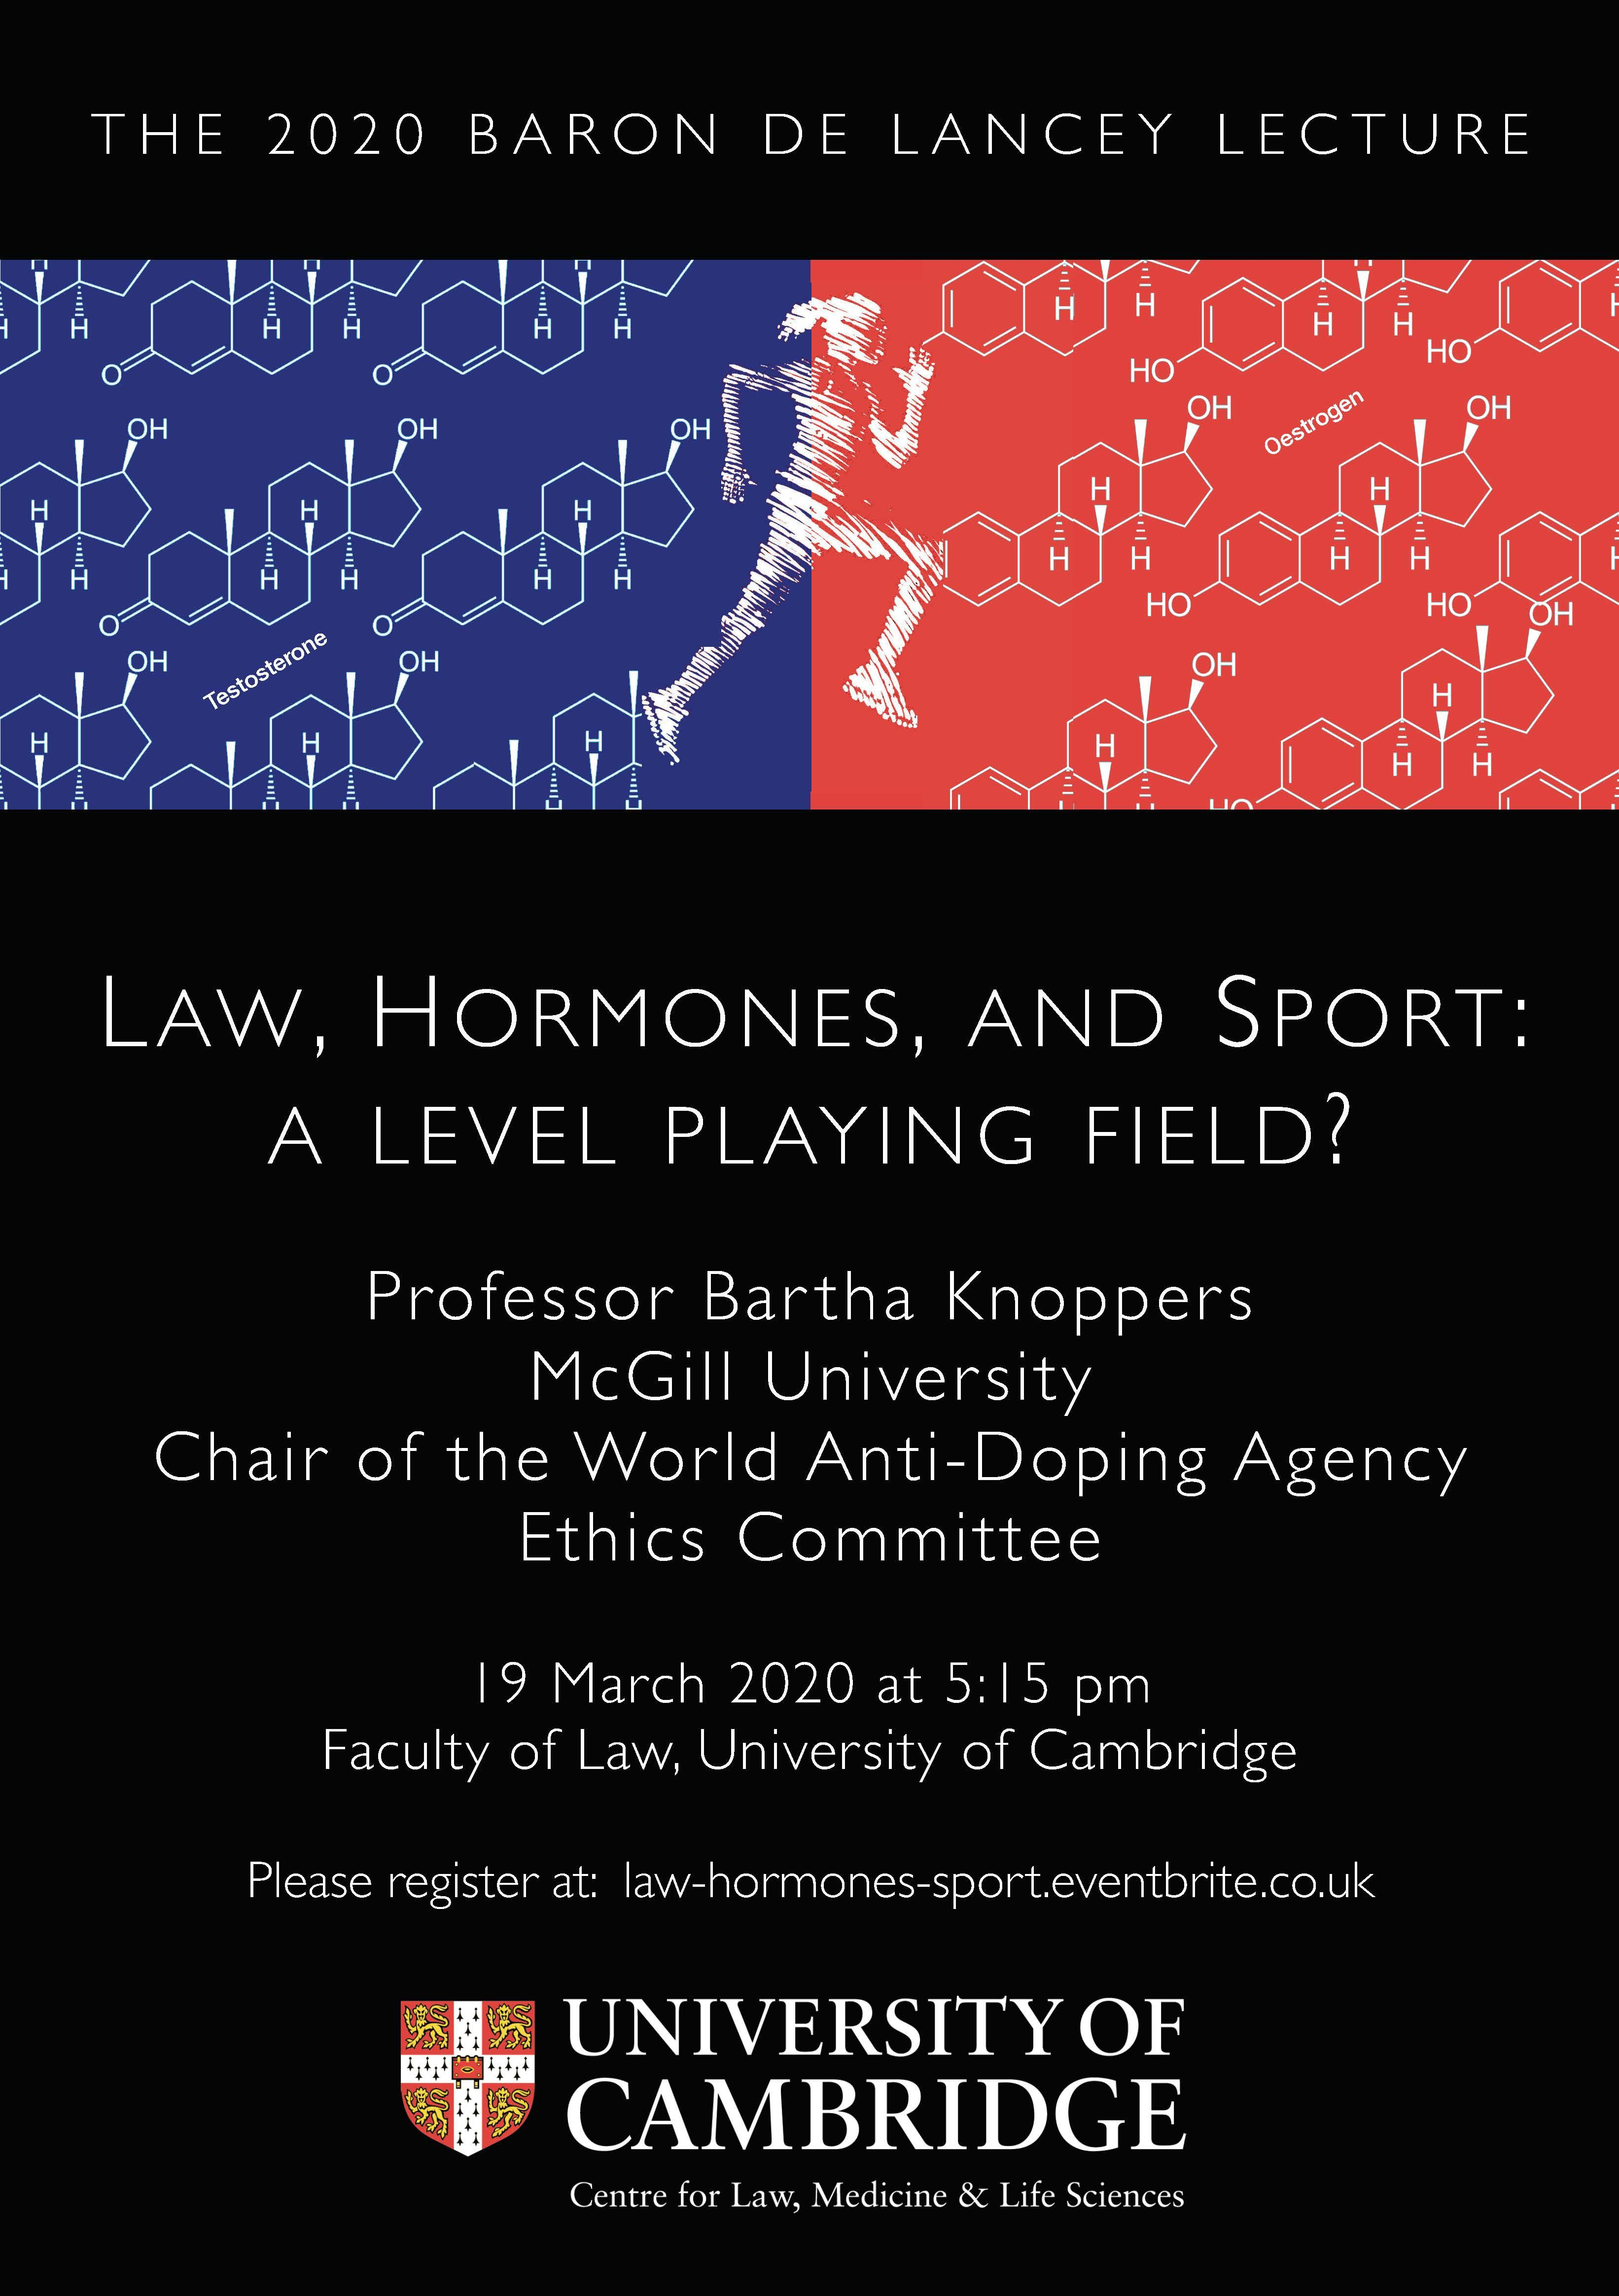 Poster for the Baron de Lancey Lecture 2020: Law, Hormones, and Sport: a level playing field?